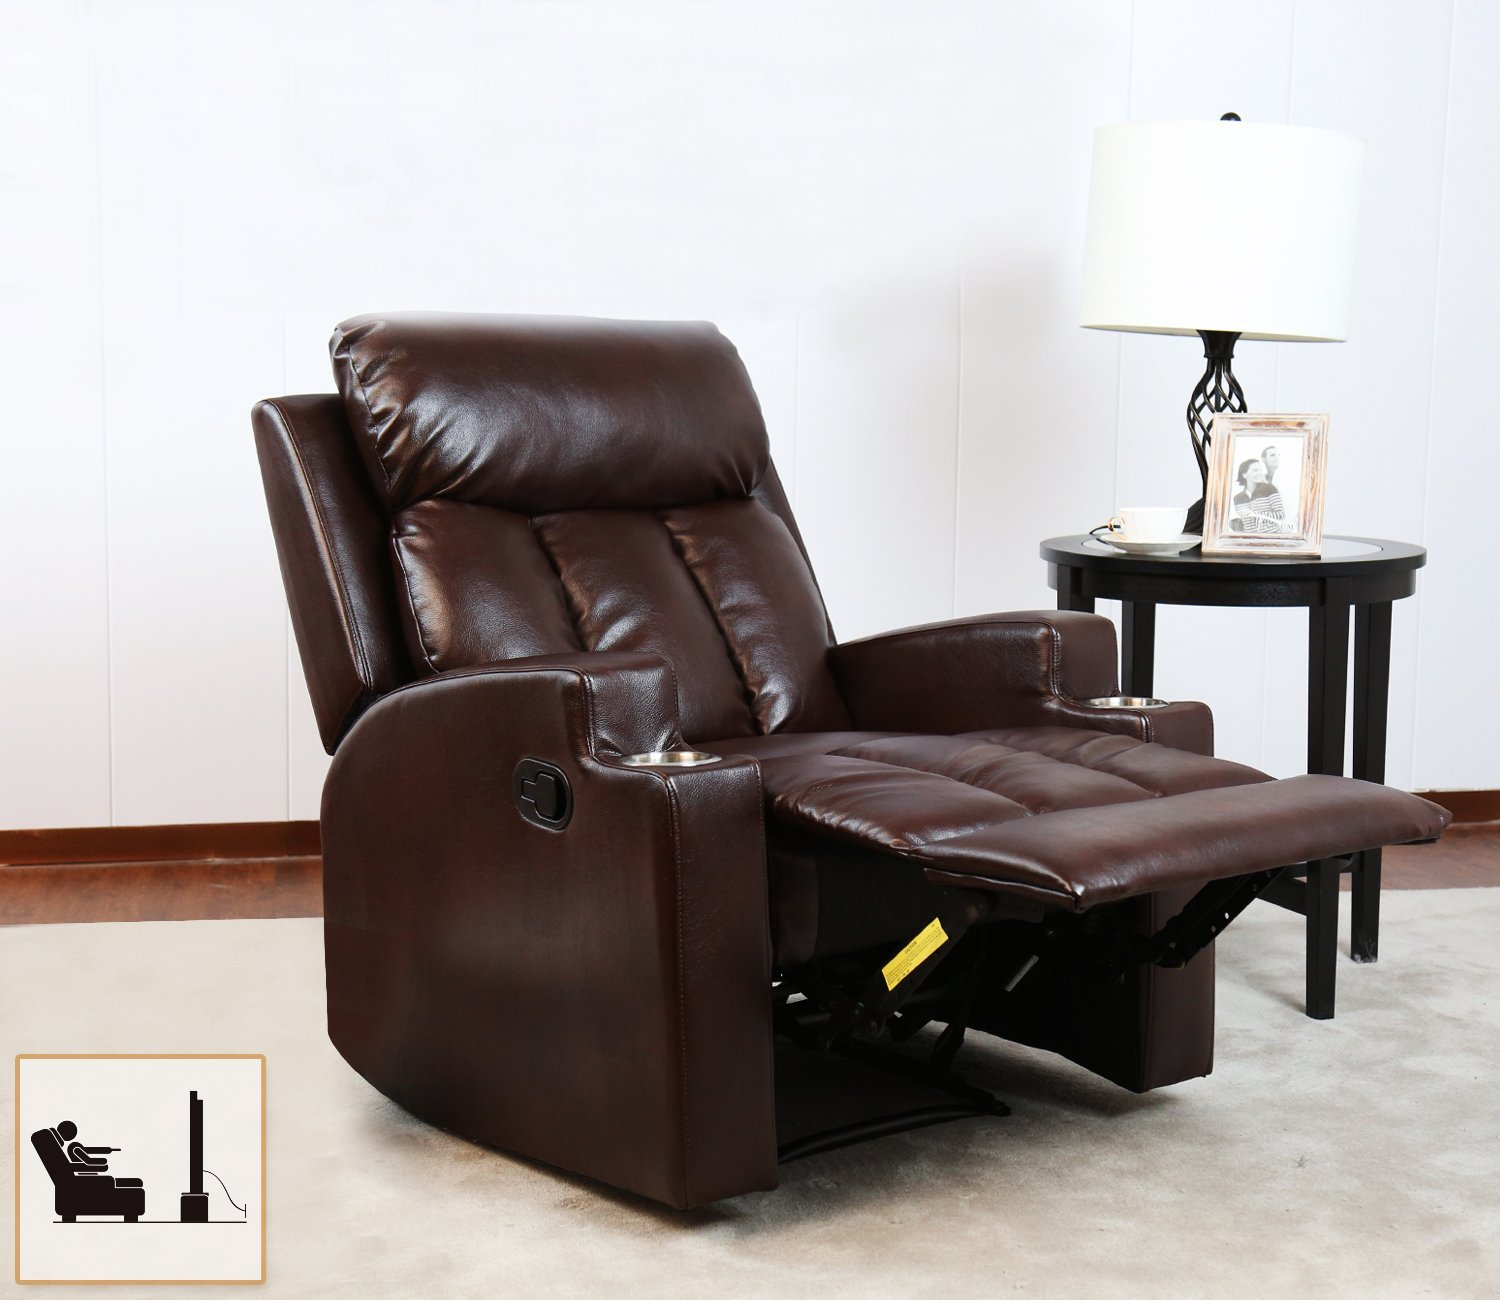 BONZY Recliner Chair Contemporary Theater Seating Two Cup Holder Brown  Leather Chairs For Modern Living Room